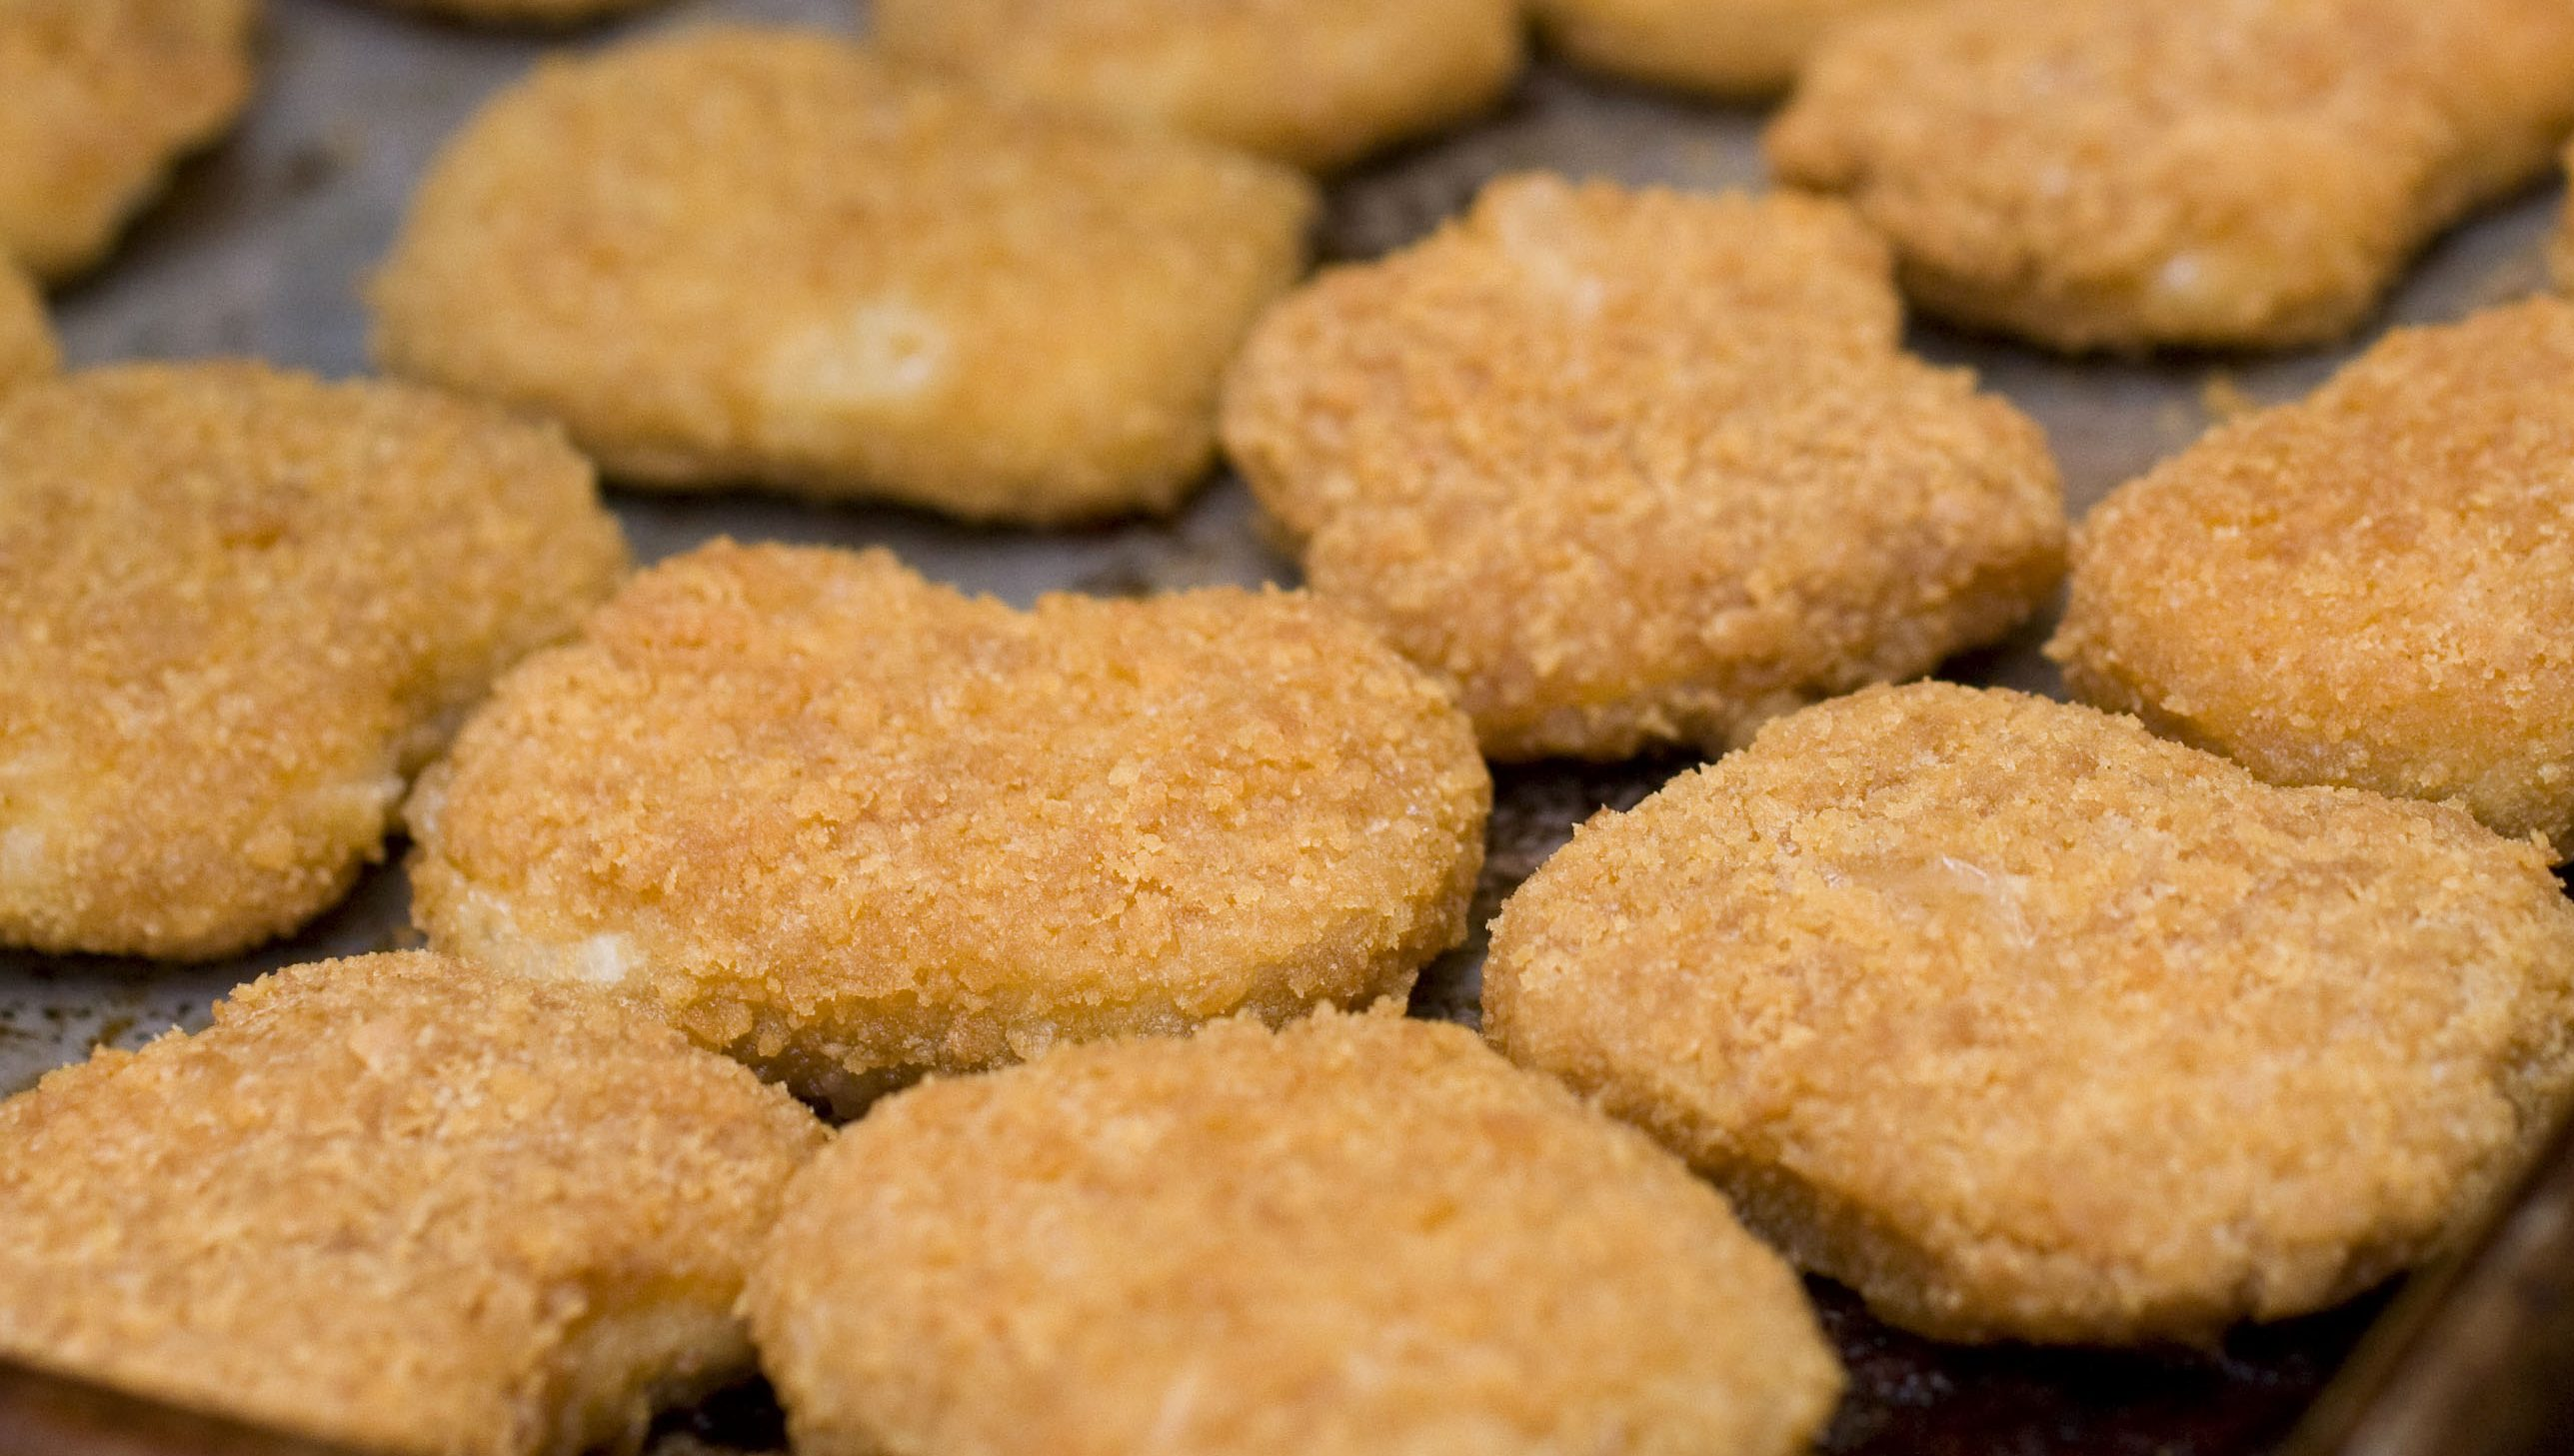 Chicken nuggets, fresh from the oven, are seen in this May 2, 2010 photo. Kids love chicken nuggets, but Consumer Reports says watch out for fat and salt.     (AP Photo/Larry Crowe)